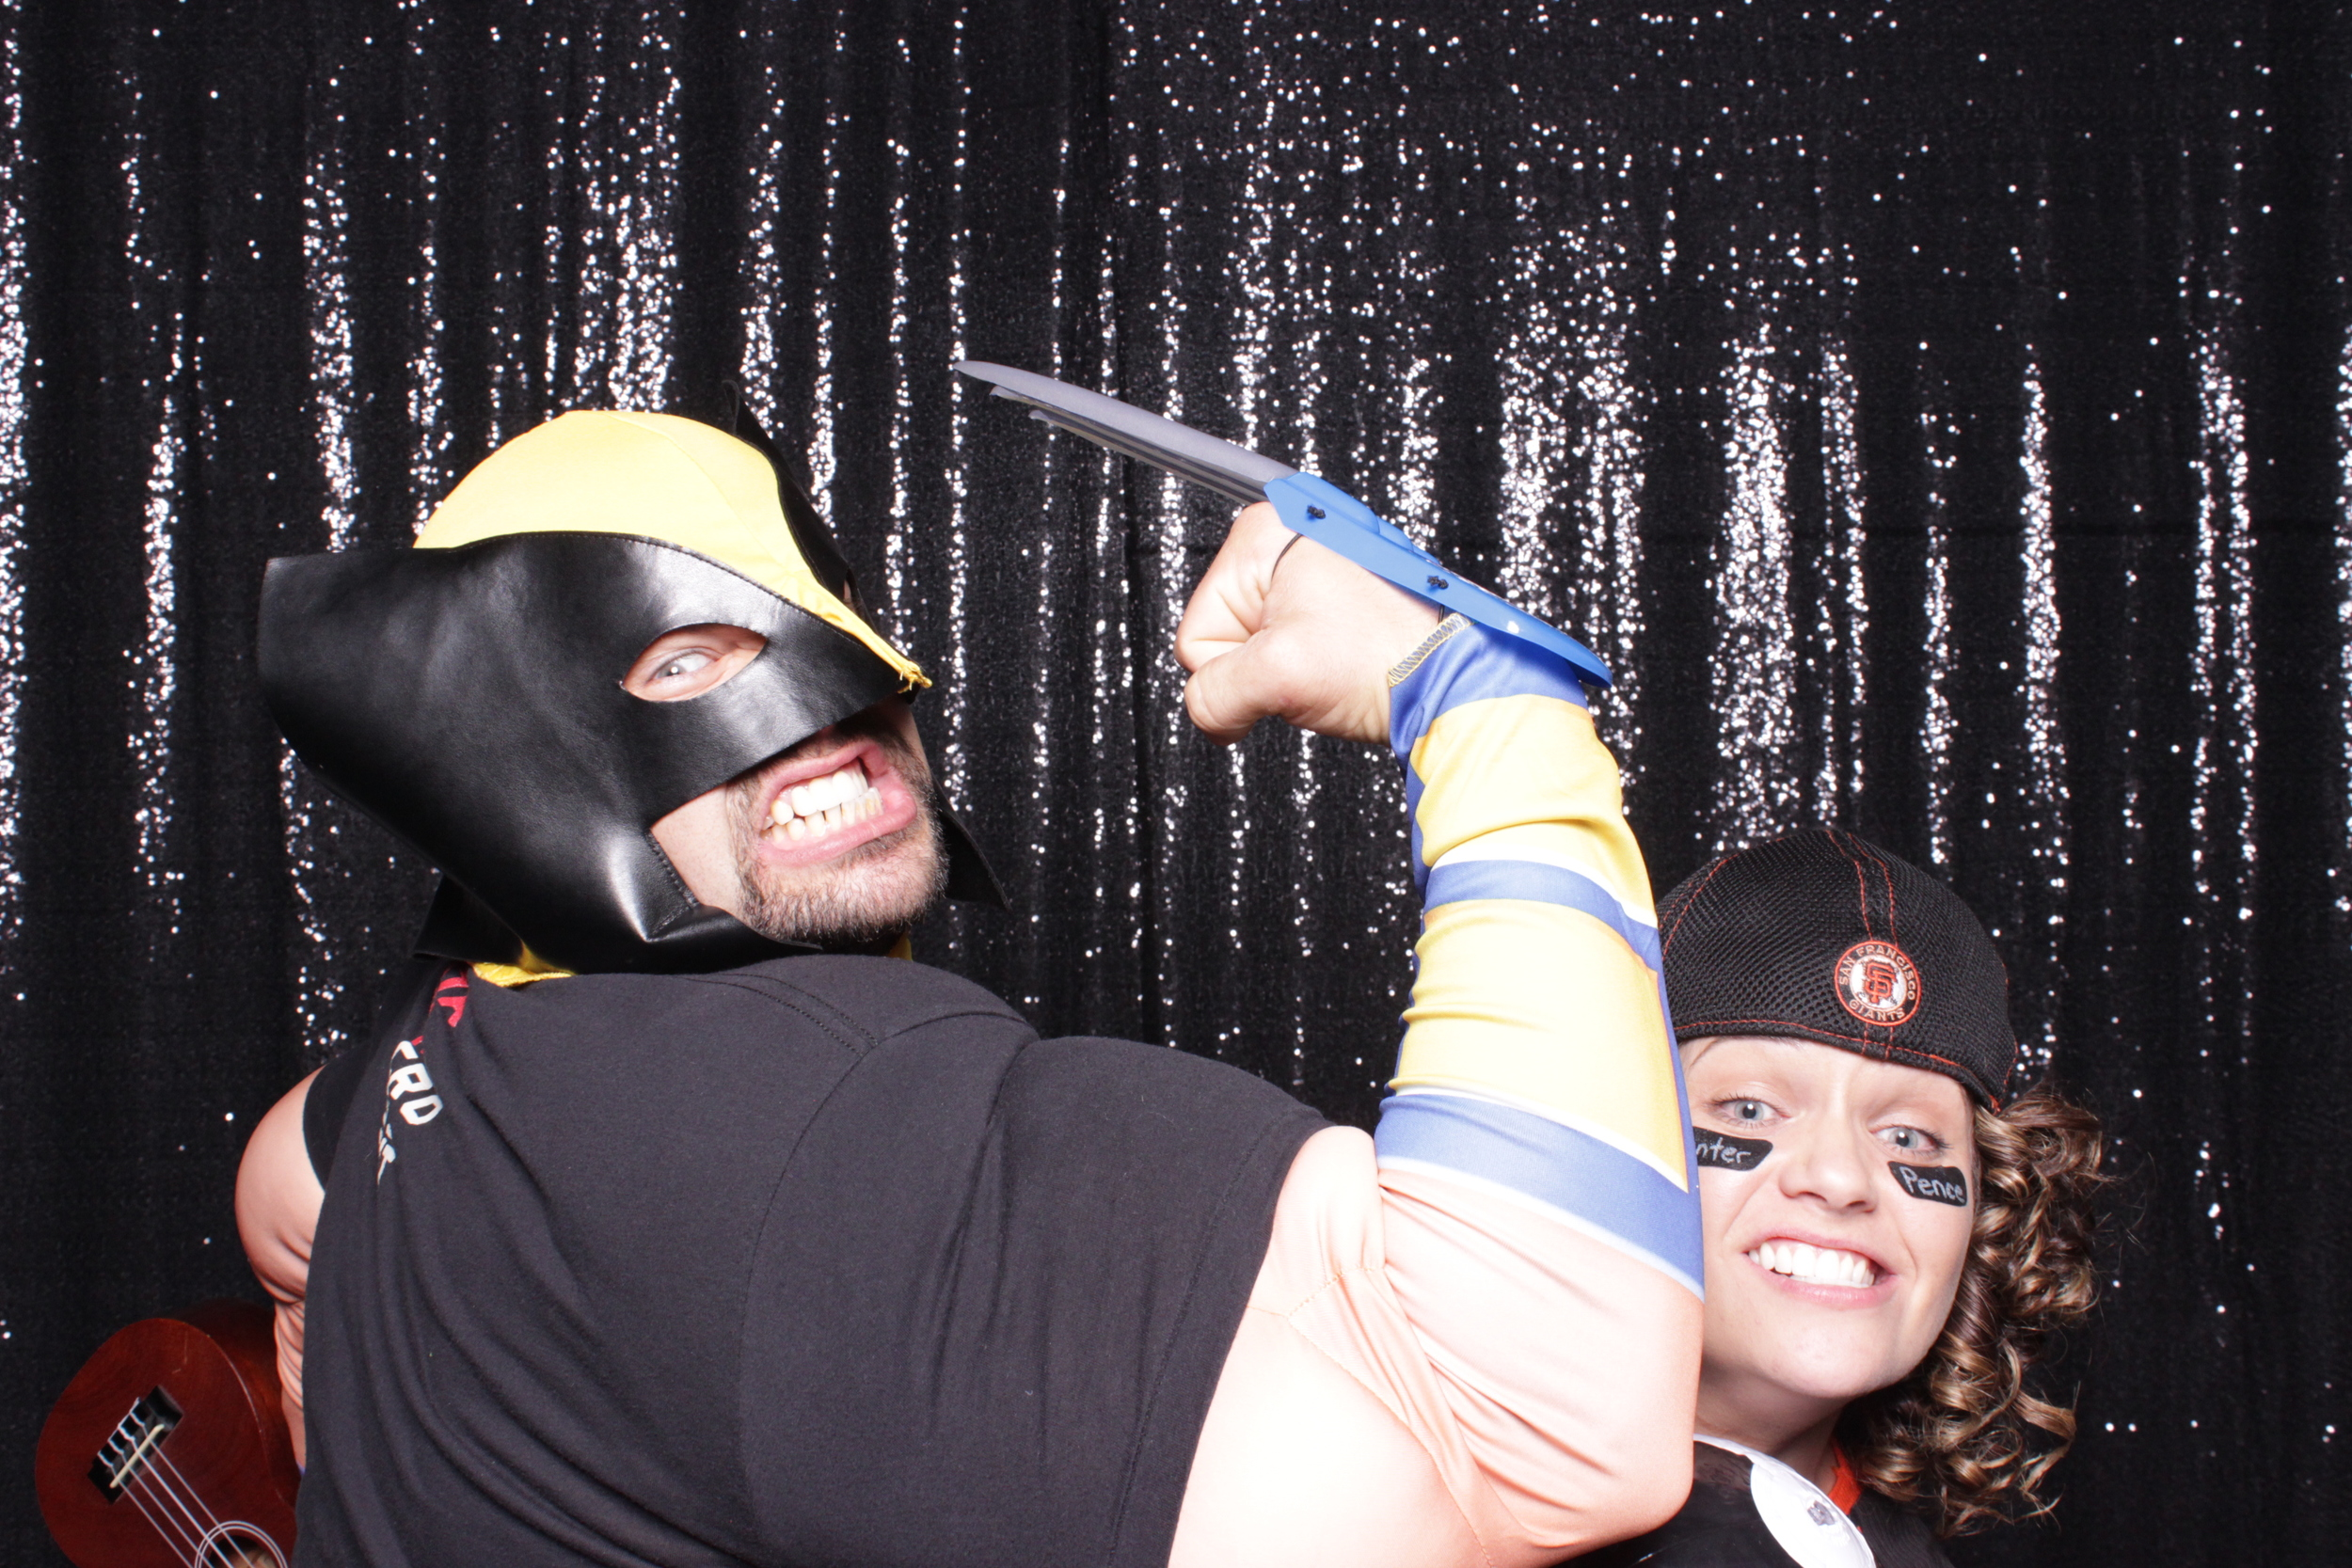 chico-california-open-air-photo-booth-rental-halloween-party-wolverine-costume